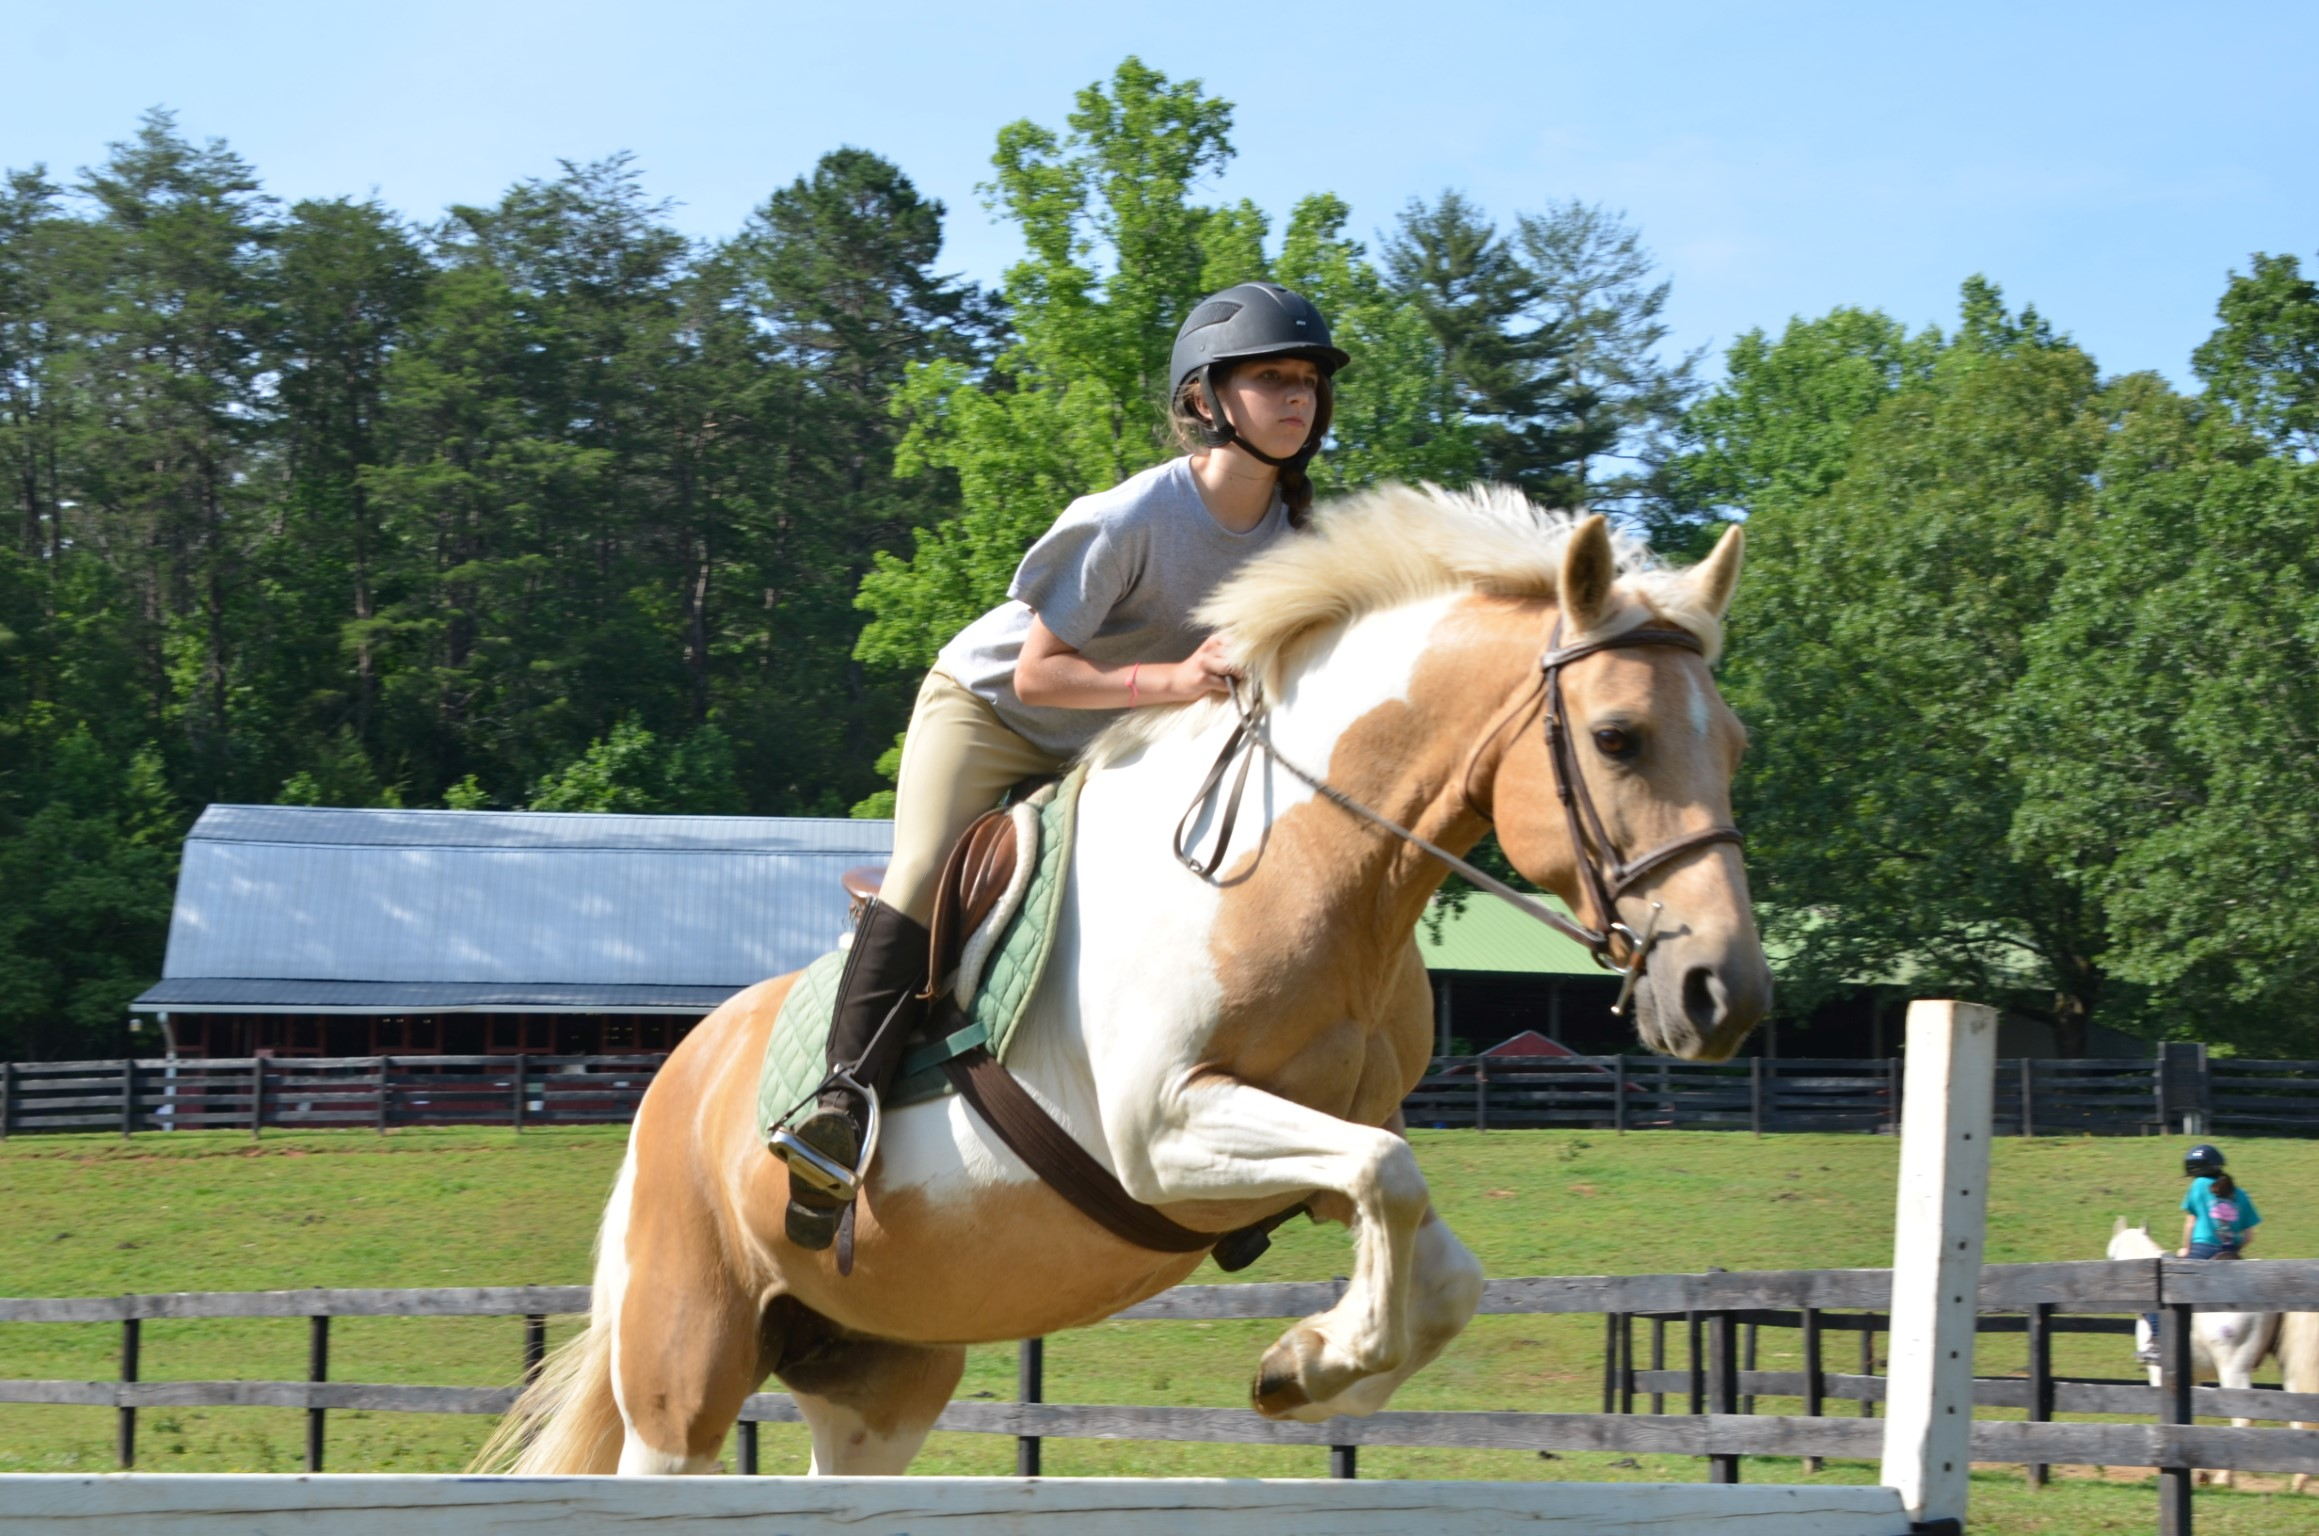 Horse and camper exhibit perfect form as she jumps a beautiful Palomino over a rail.